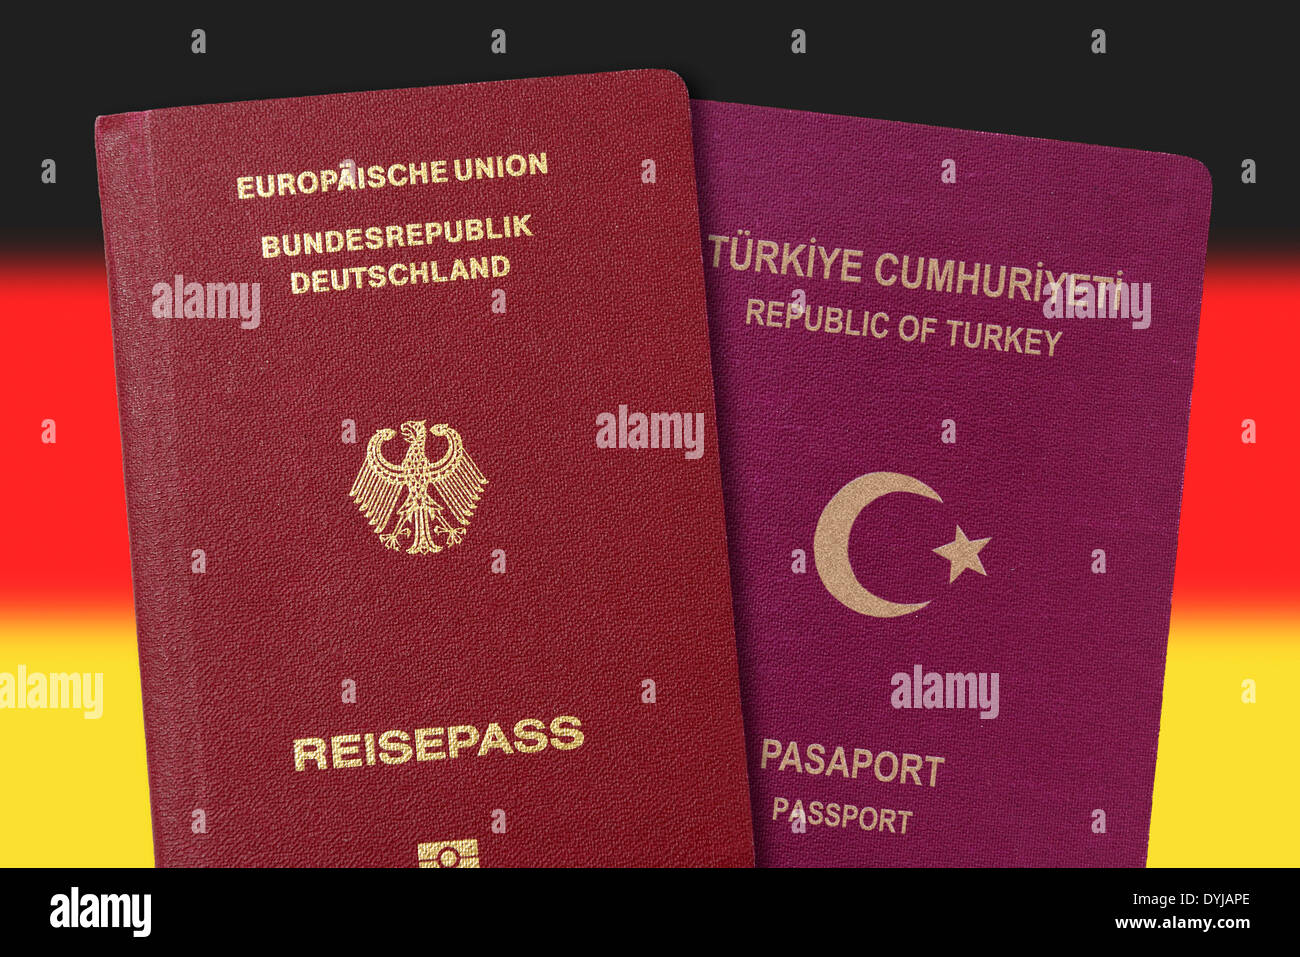 German and Turkish passport in front Germany flag, dual citizenship - Stock Image